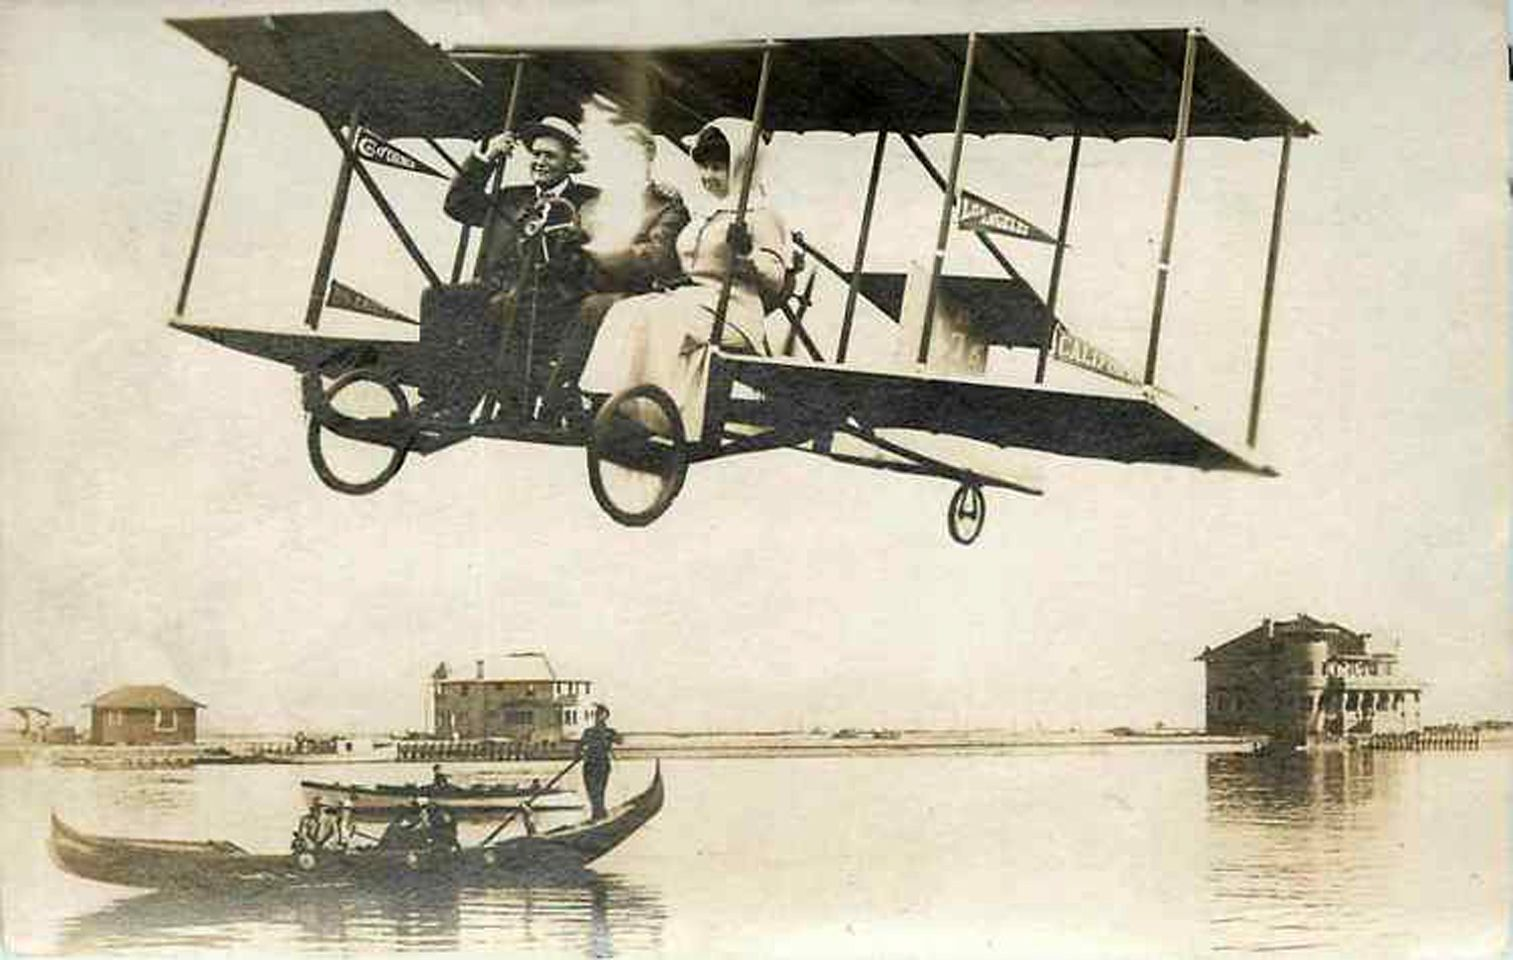 """An odd postcard from 1911. Two of the banners on the airplane read """"Los Angeles"""" and """"California.""""  Bizarre Los Angeles."""